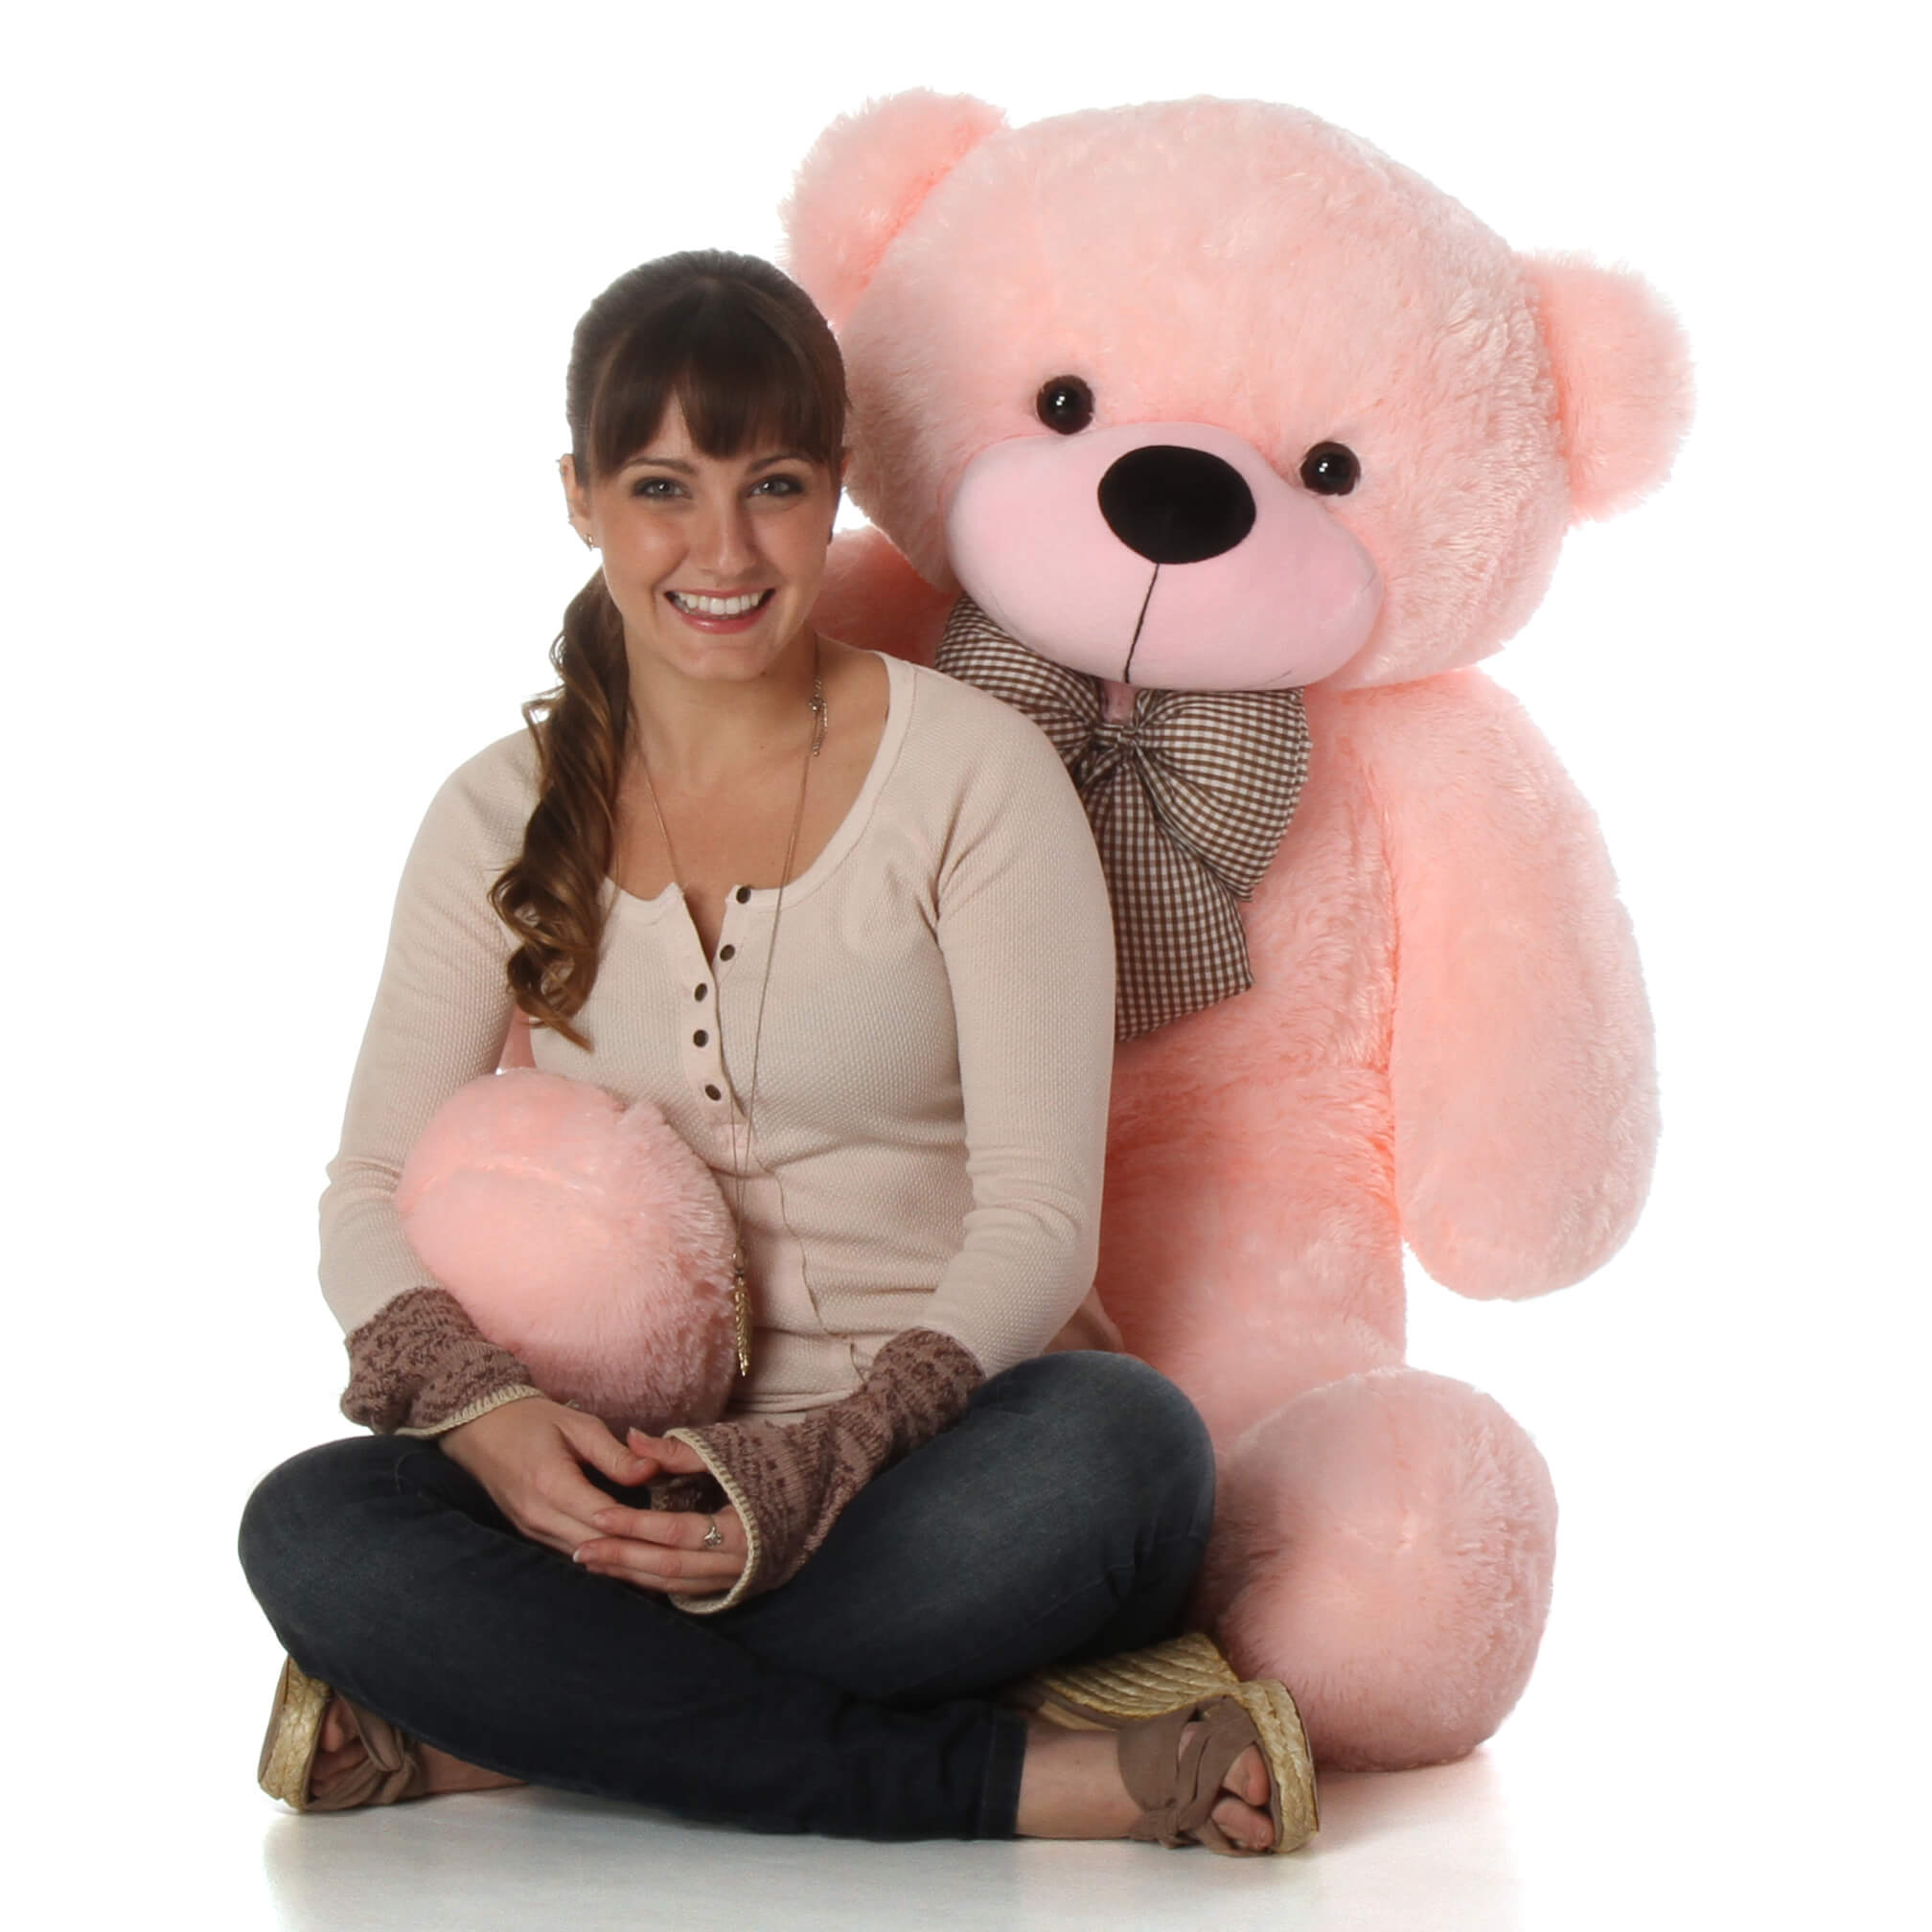 48in-lady-cuddles-super-soft-huggable-pink-teddy-bear-1.jpg